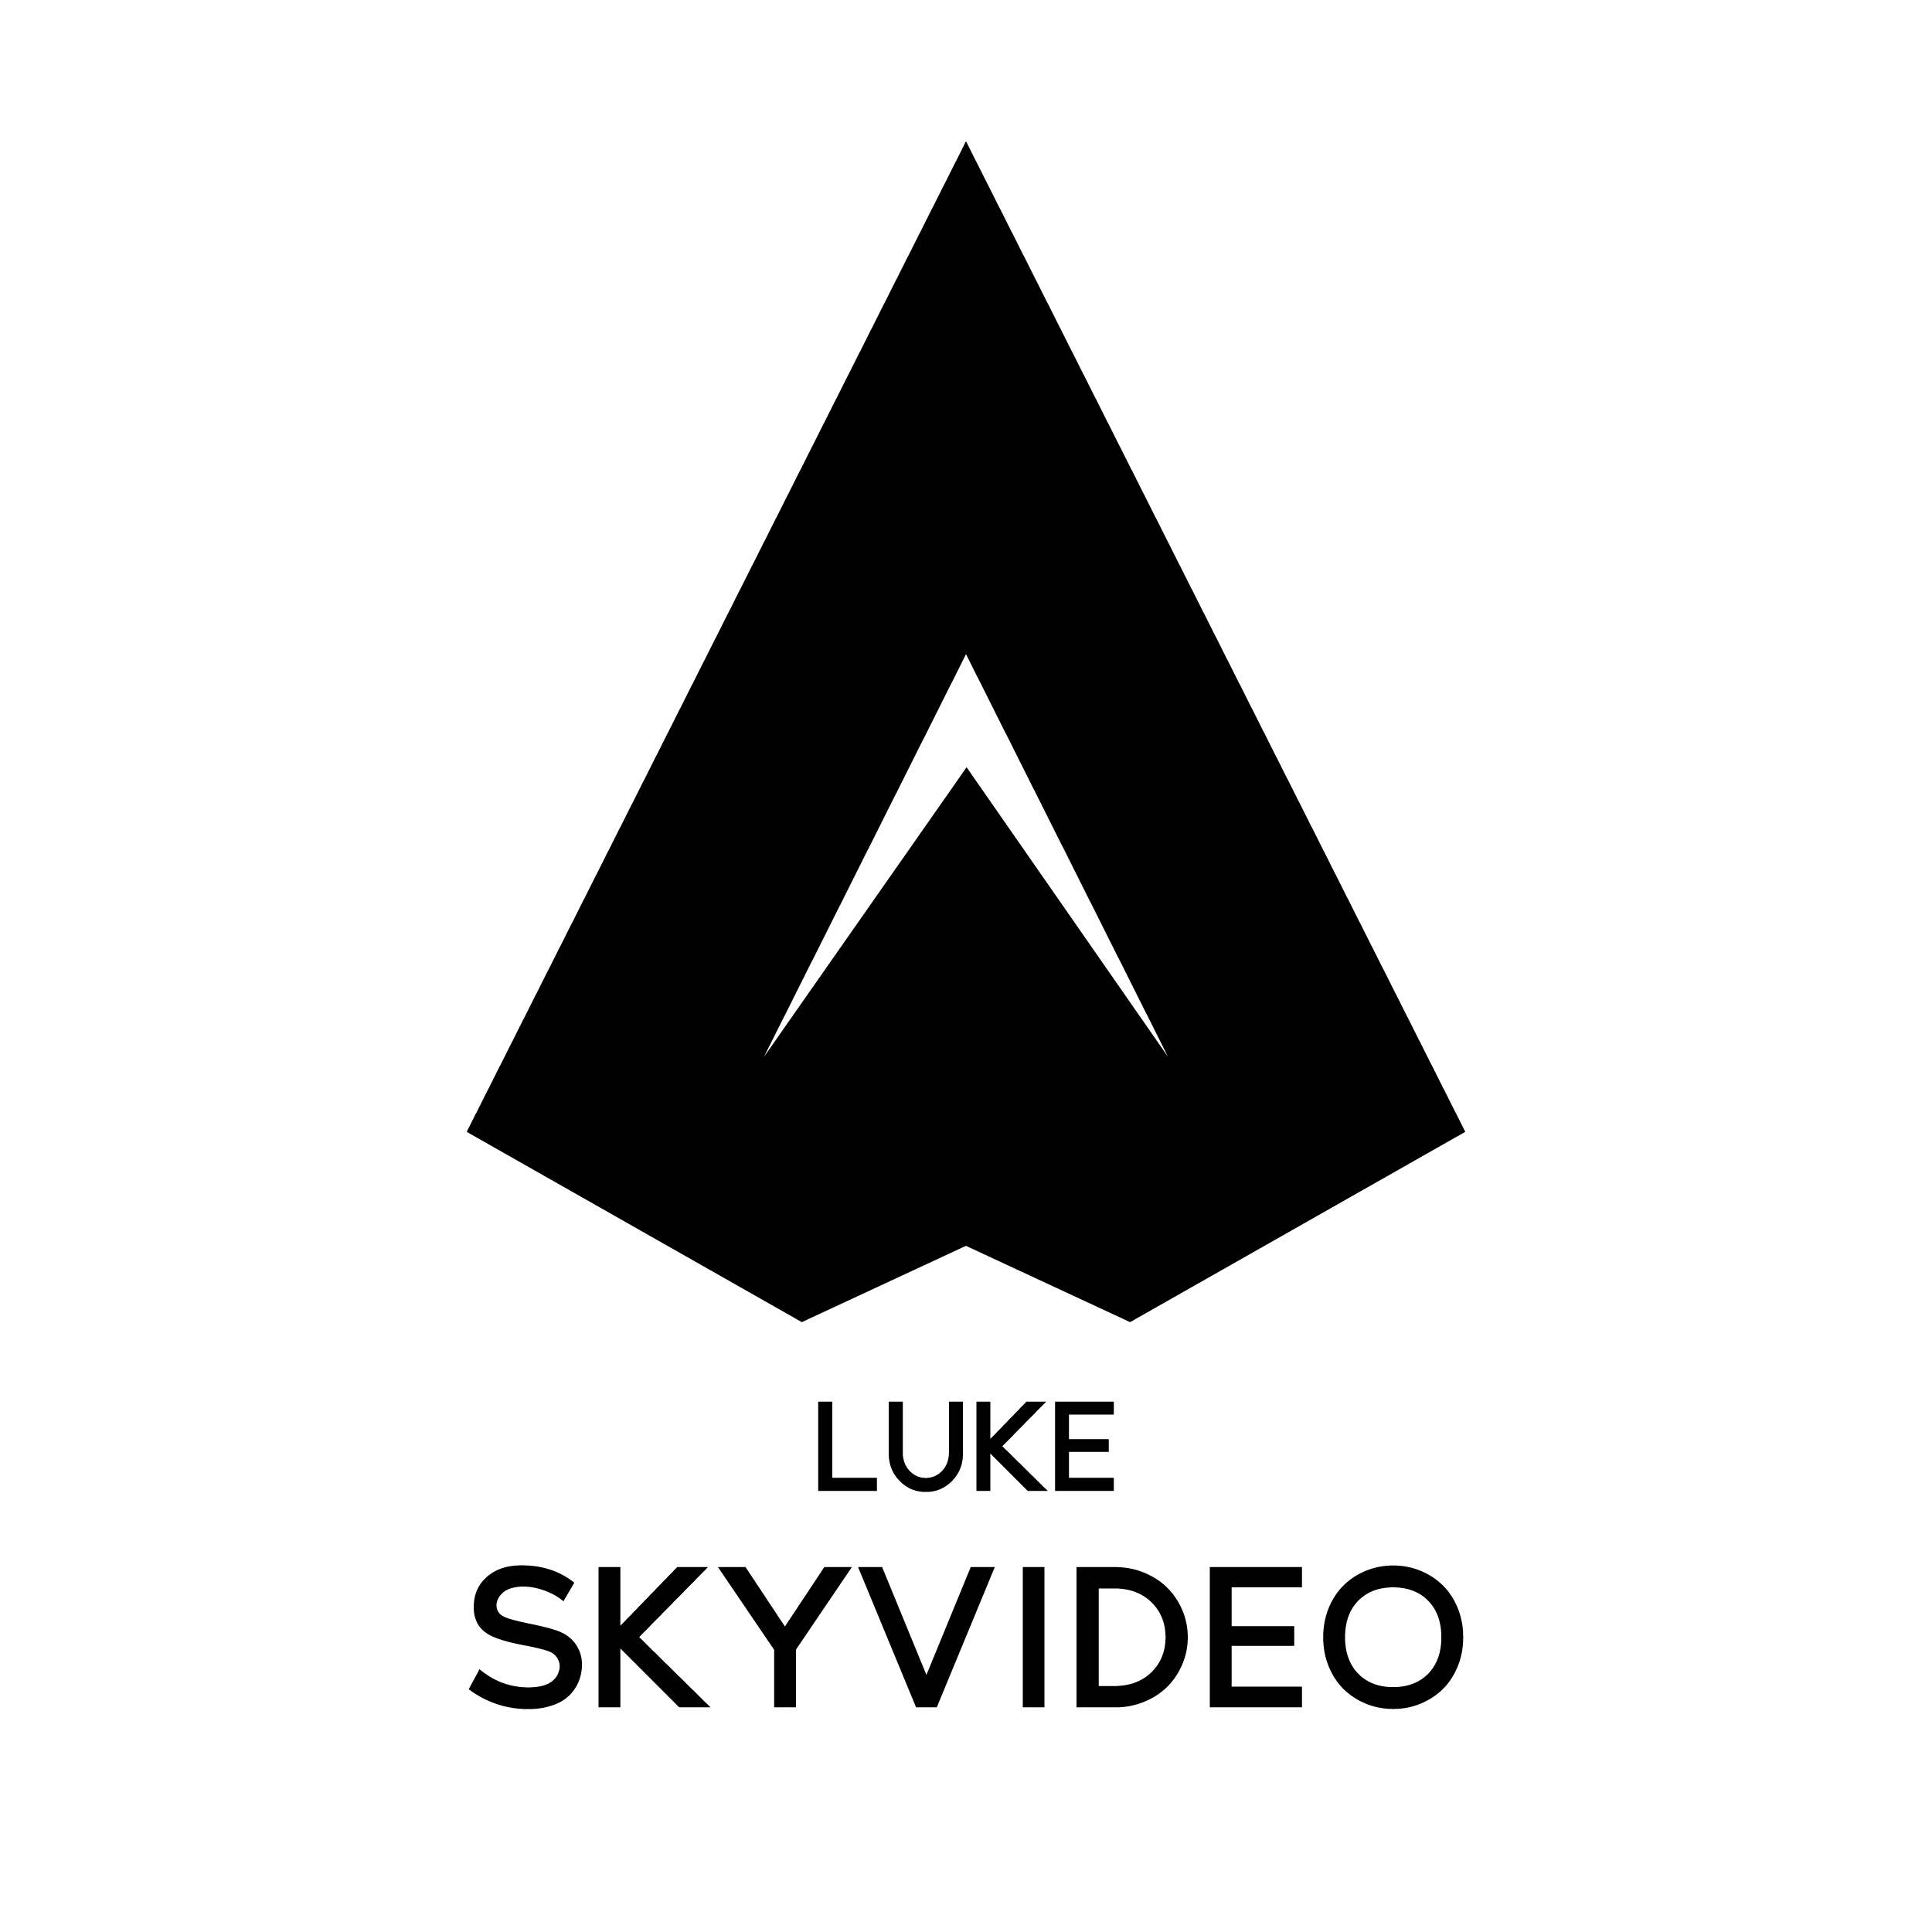 LUKE SKYVIDEO